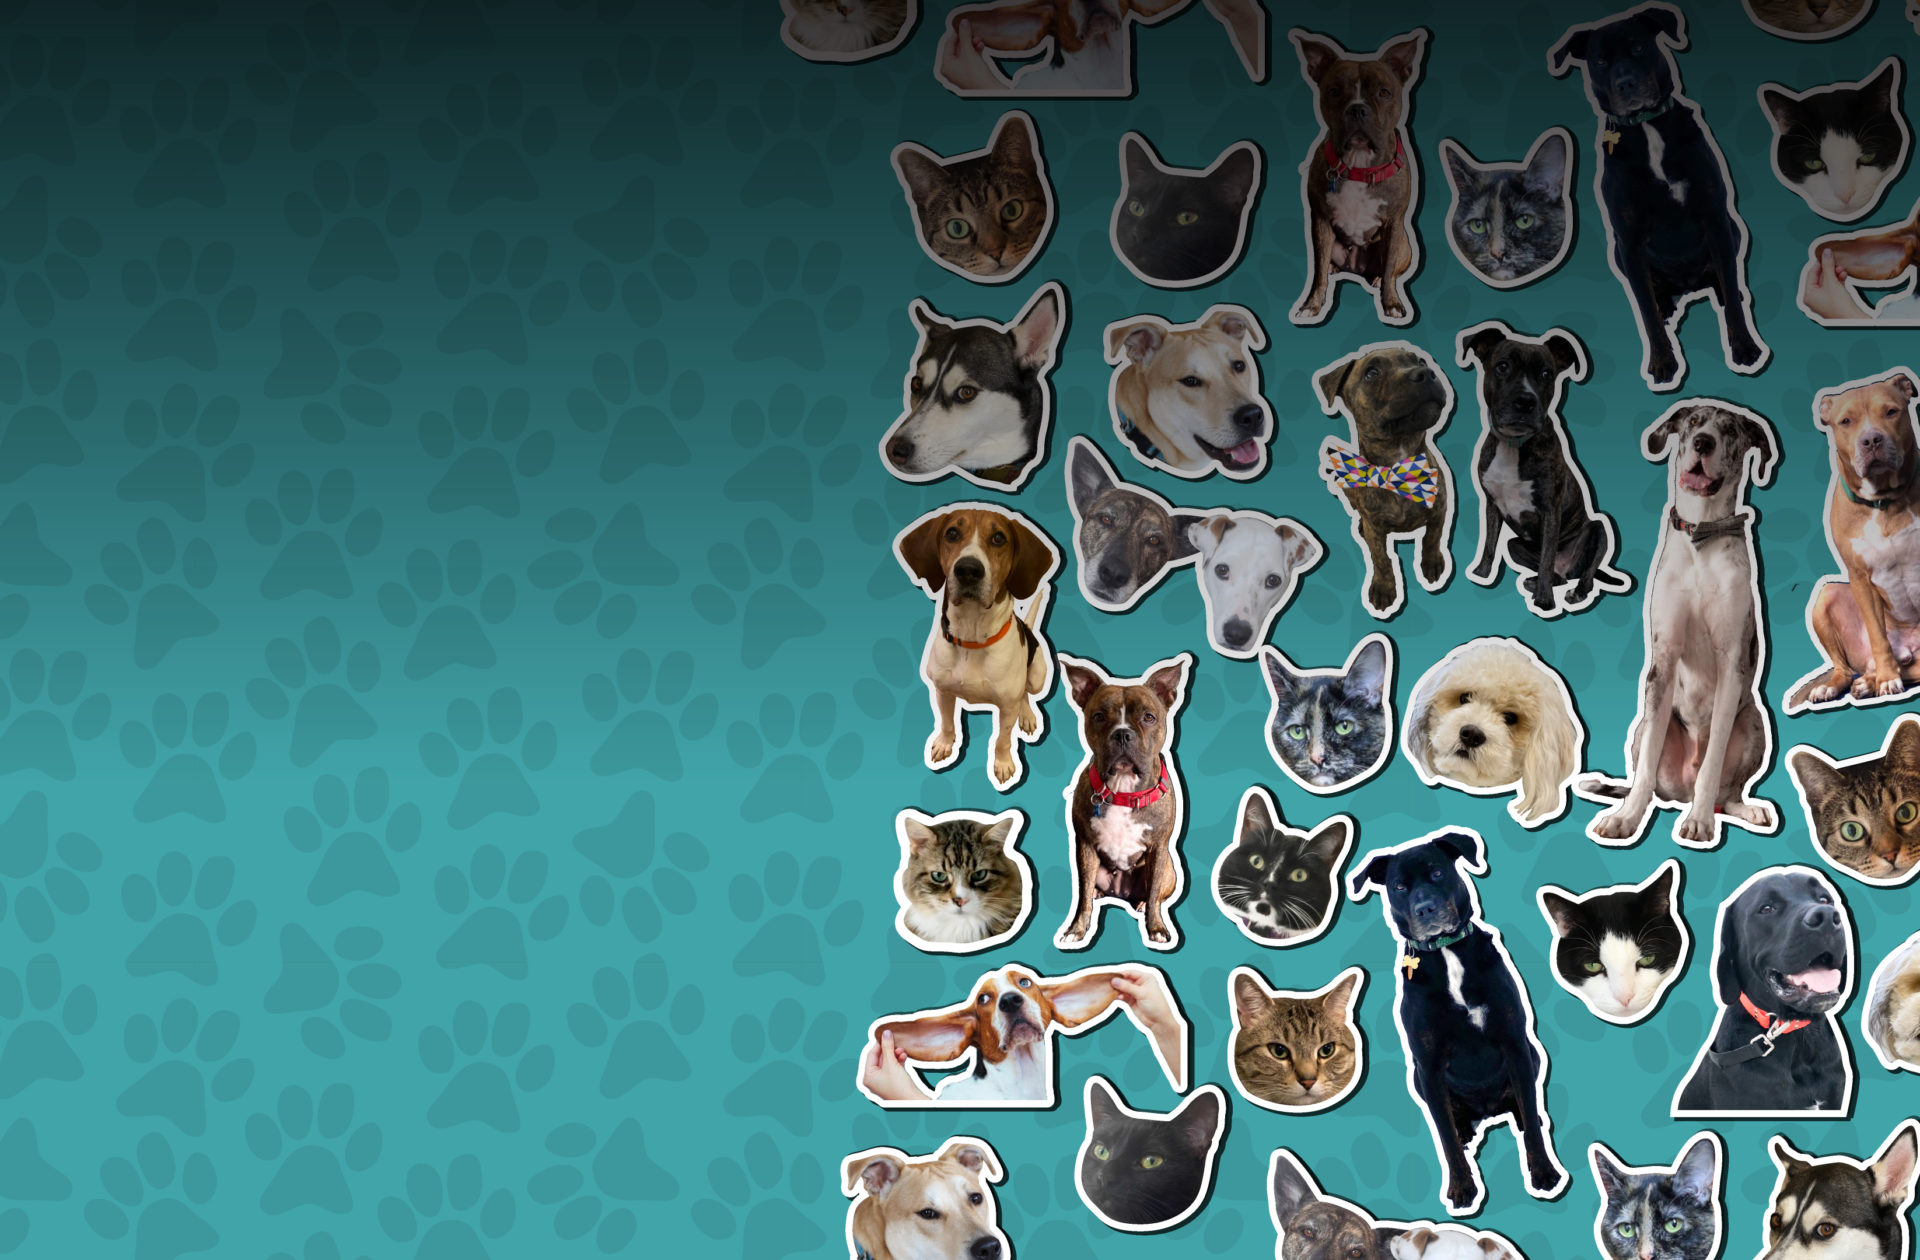 stickers of mediavine pets on a teal background